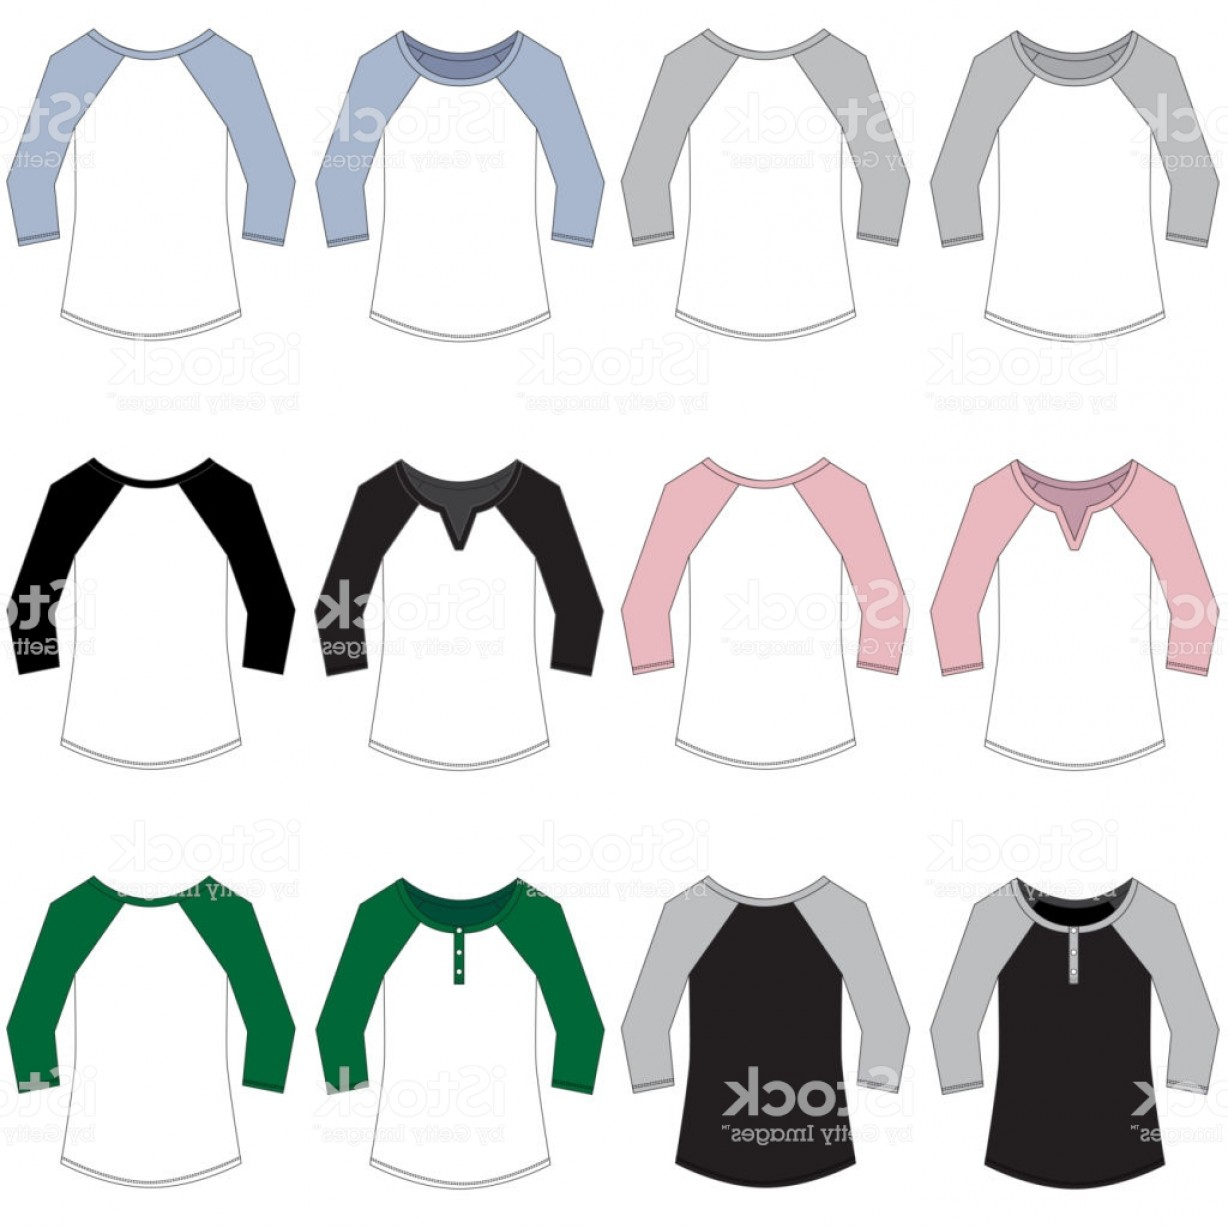 Long Sleeve Jersey Vector Template: Vector Template For Women Baseball Style Raglan Tees Gm